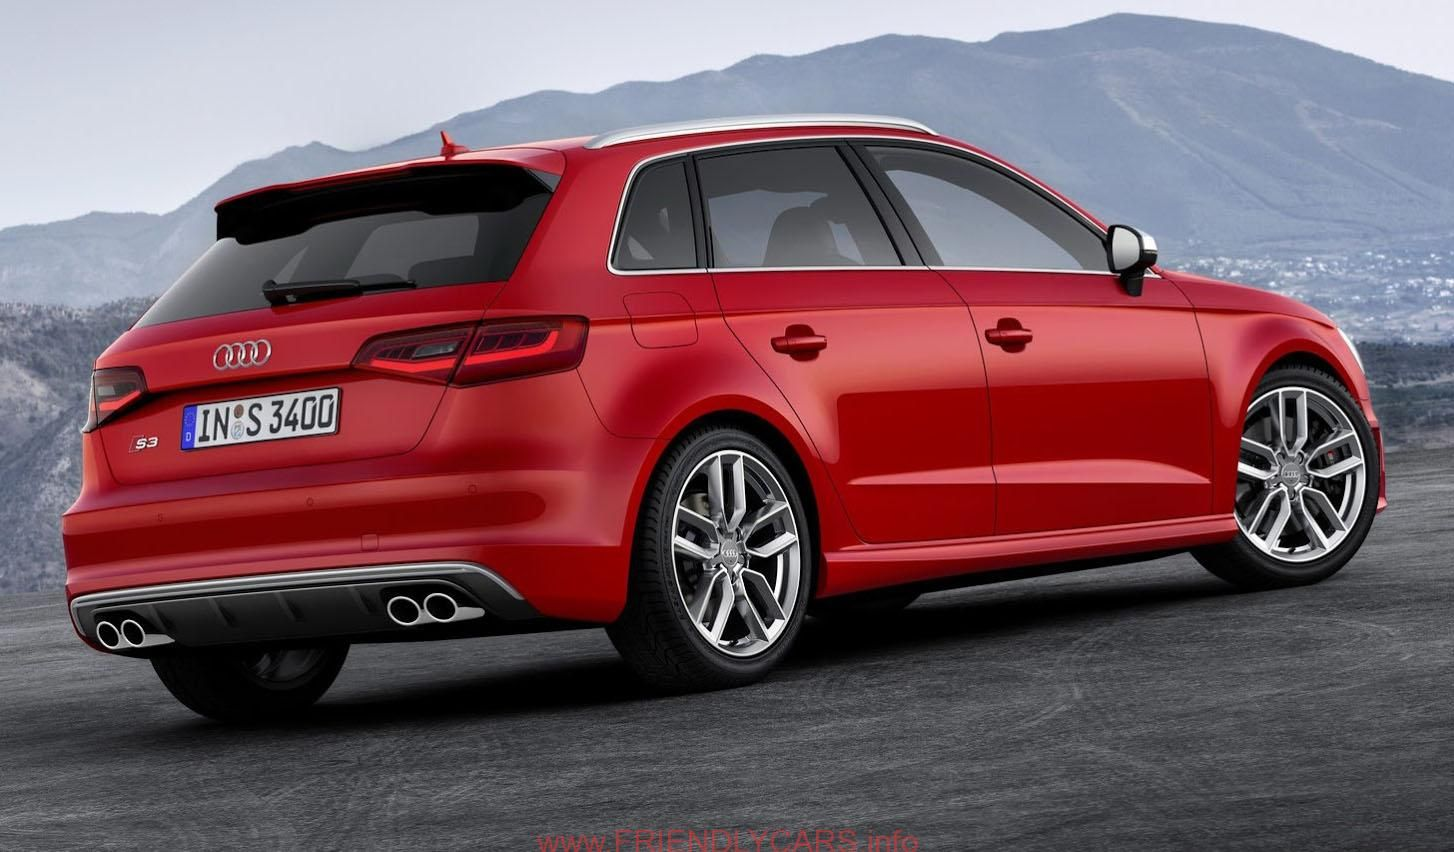 awesome audi a3 2014 hatchback car images hd Audi A3 In